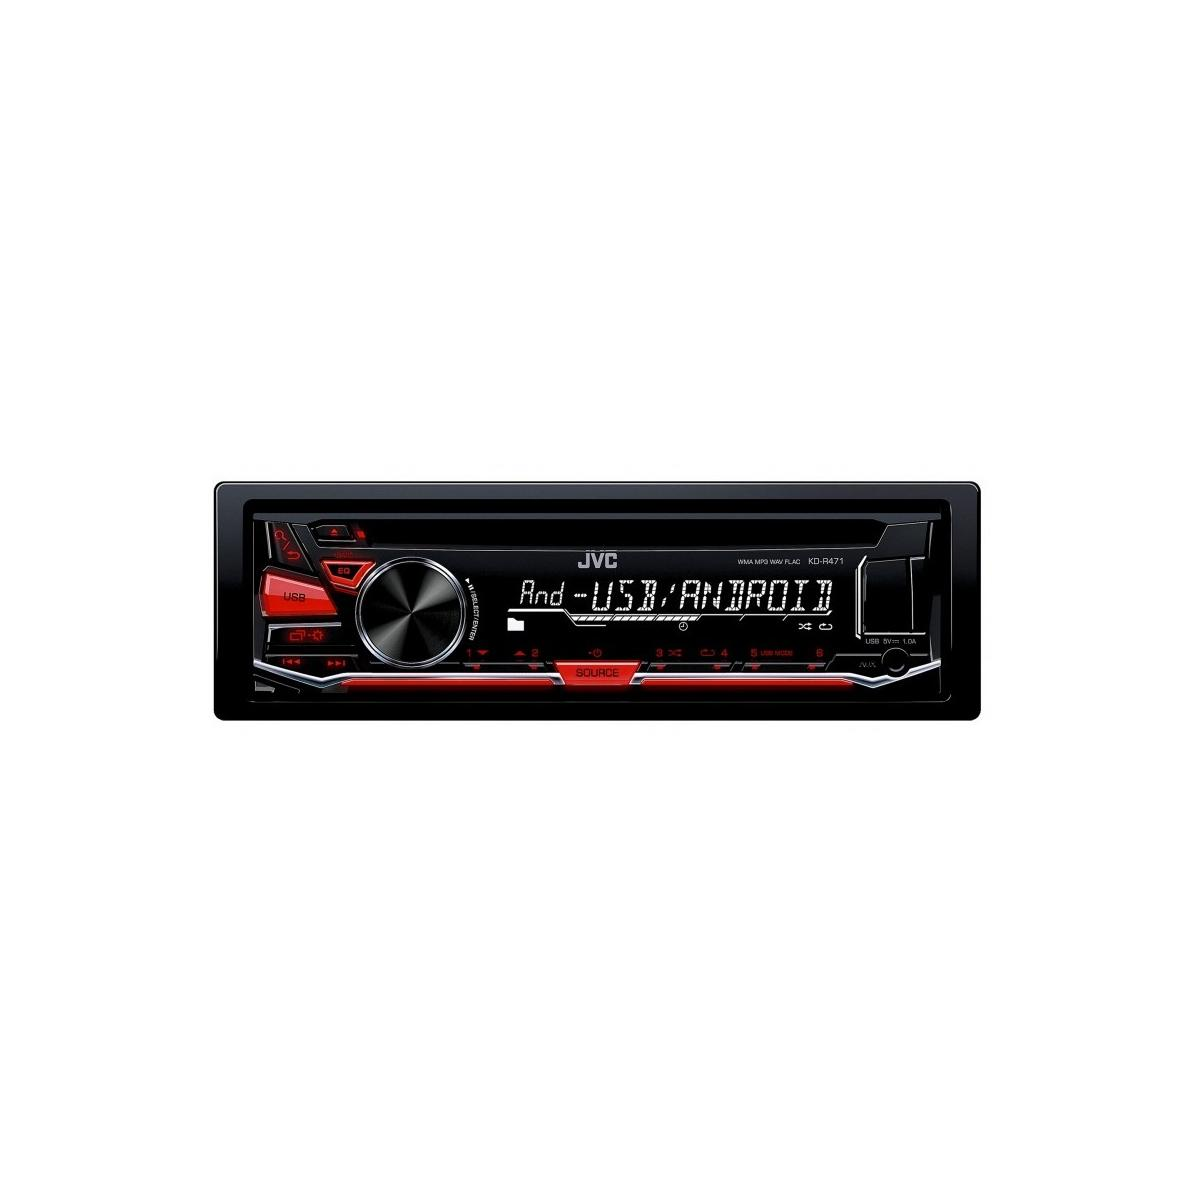 KDR471 kd r461 cd mp3 car stereo front usb aux input jvc kd-r311 wiring diagram at webbmarketing.co